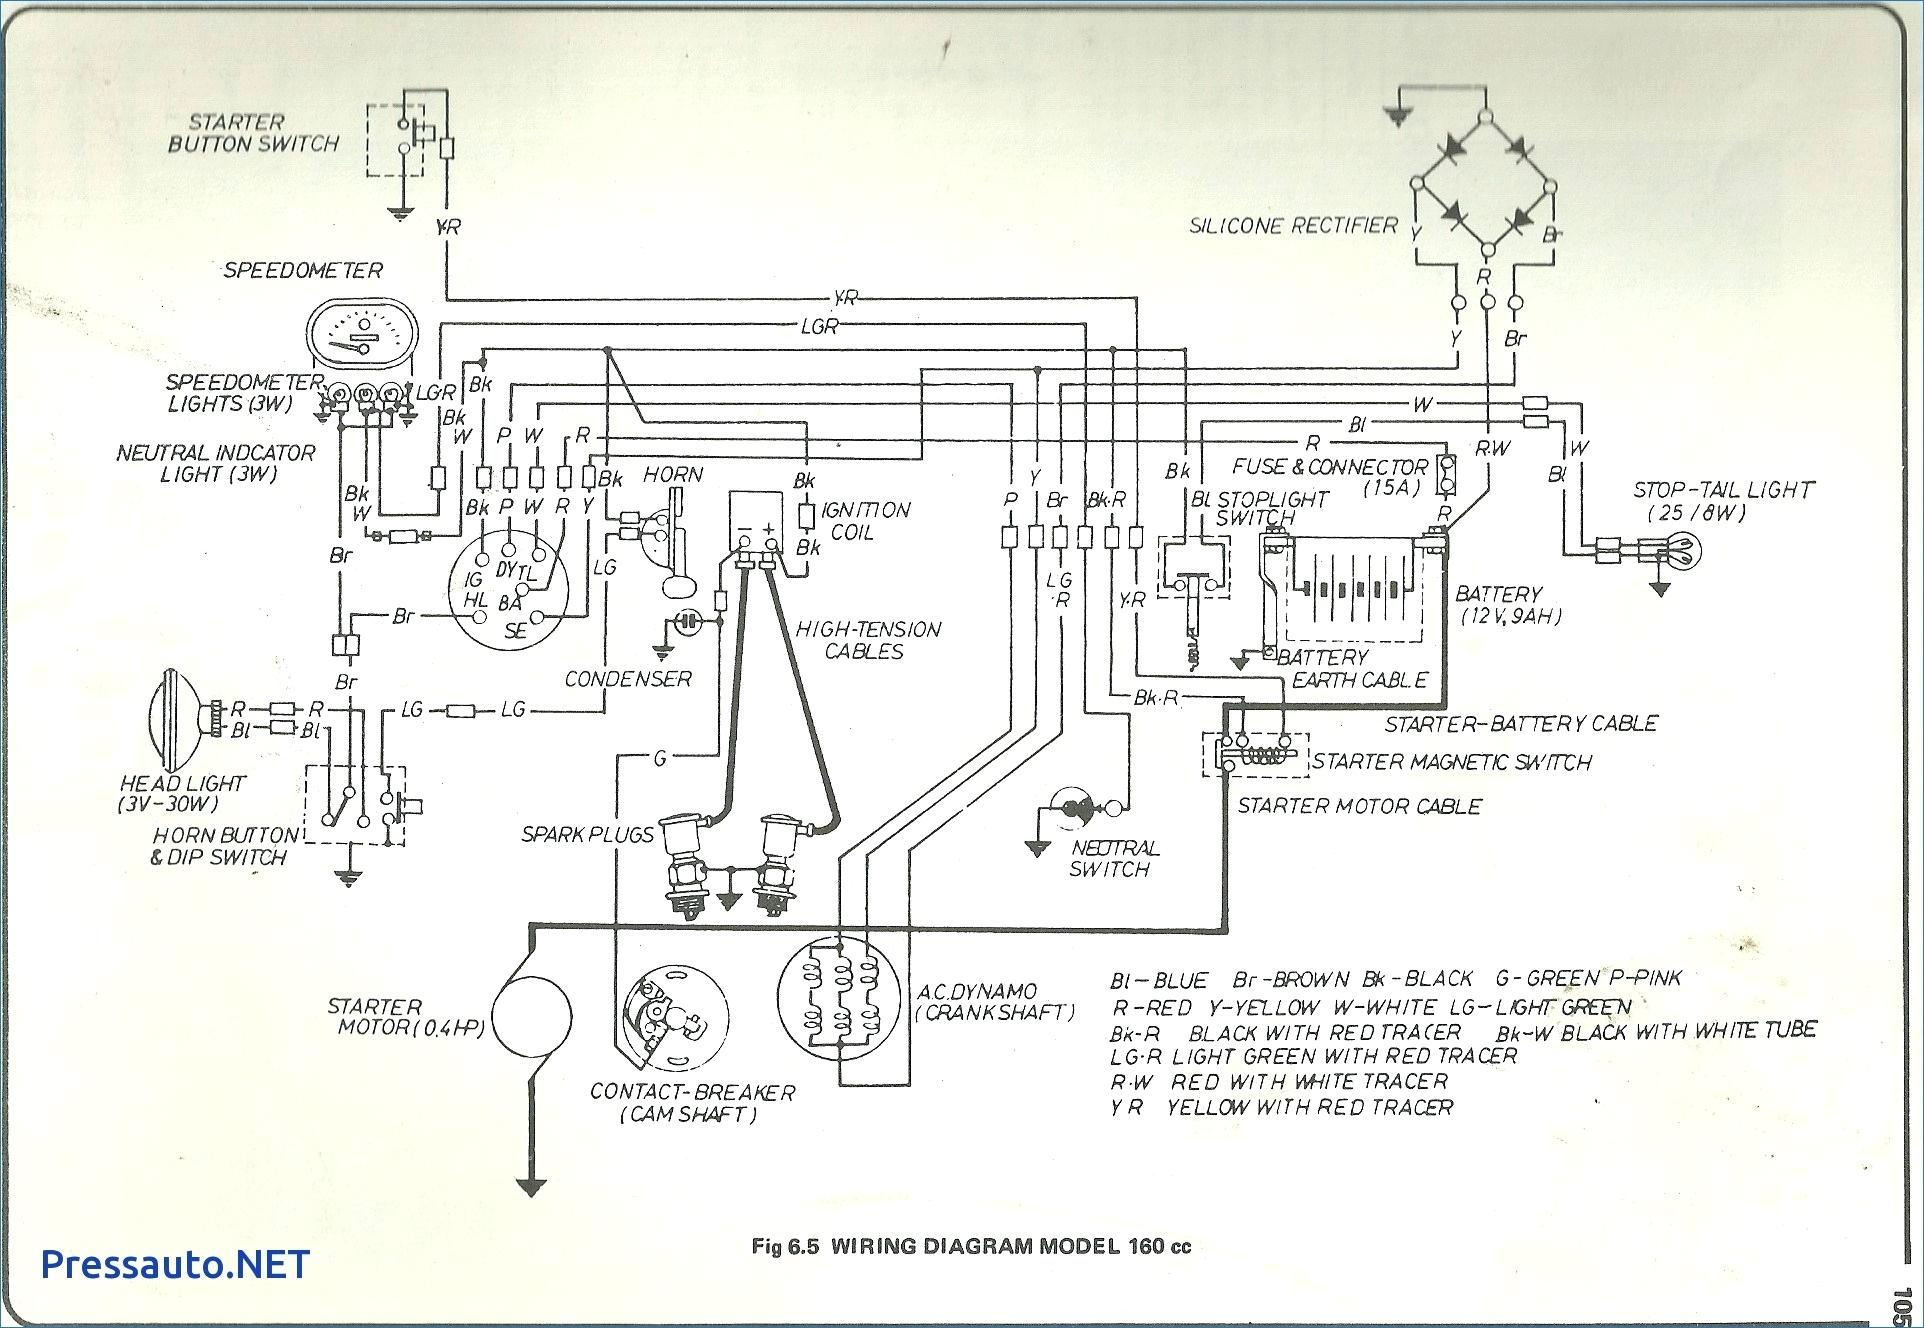 hight resolution of thermostat wiring diagram kenmore 36291112004 house wiring diagram wire schematic for kenmore upright freezer 20 6cf